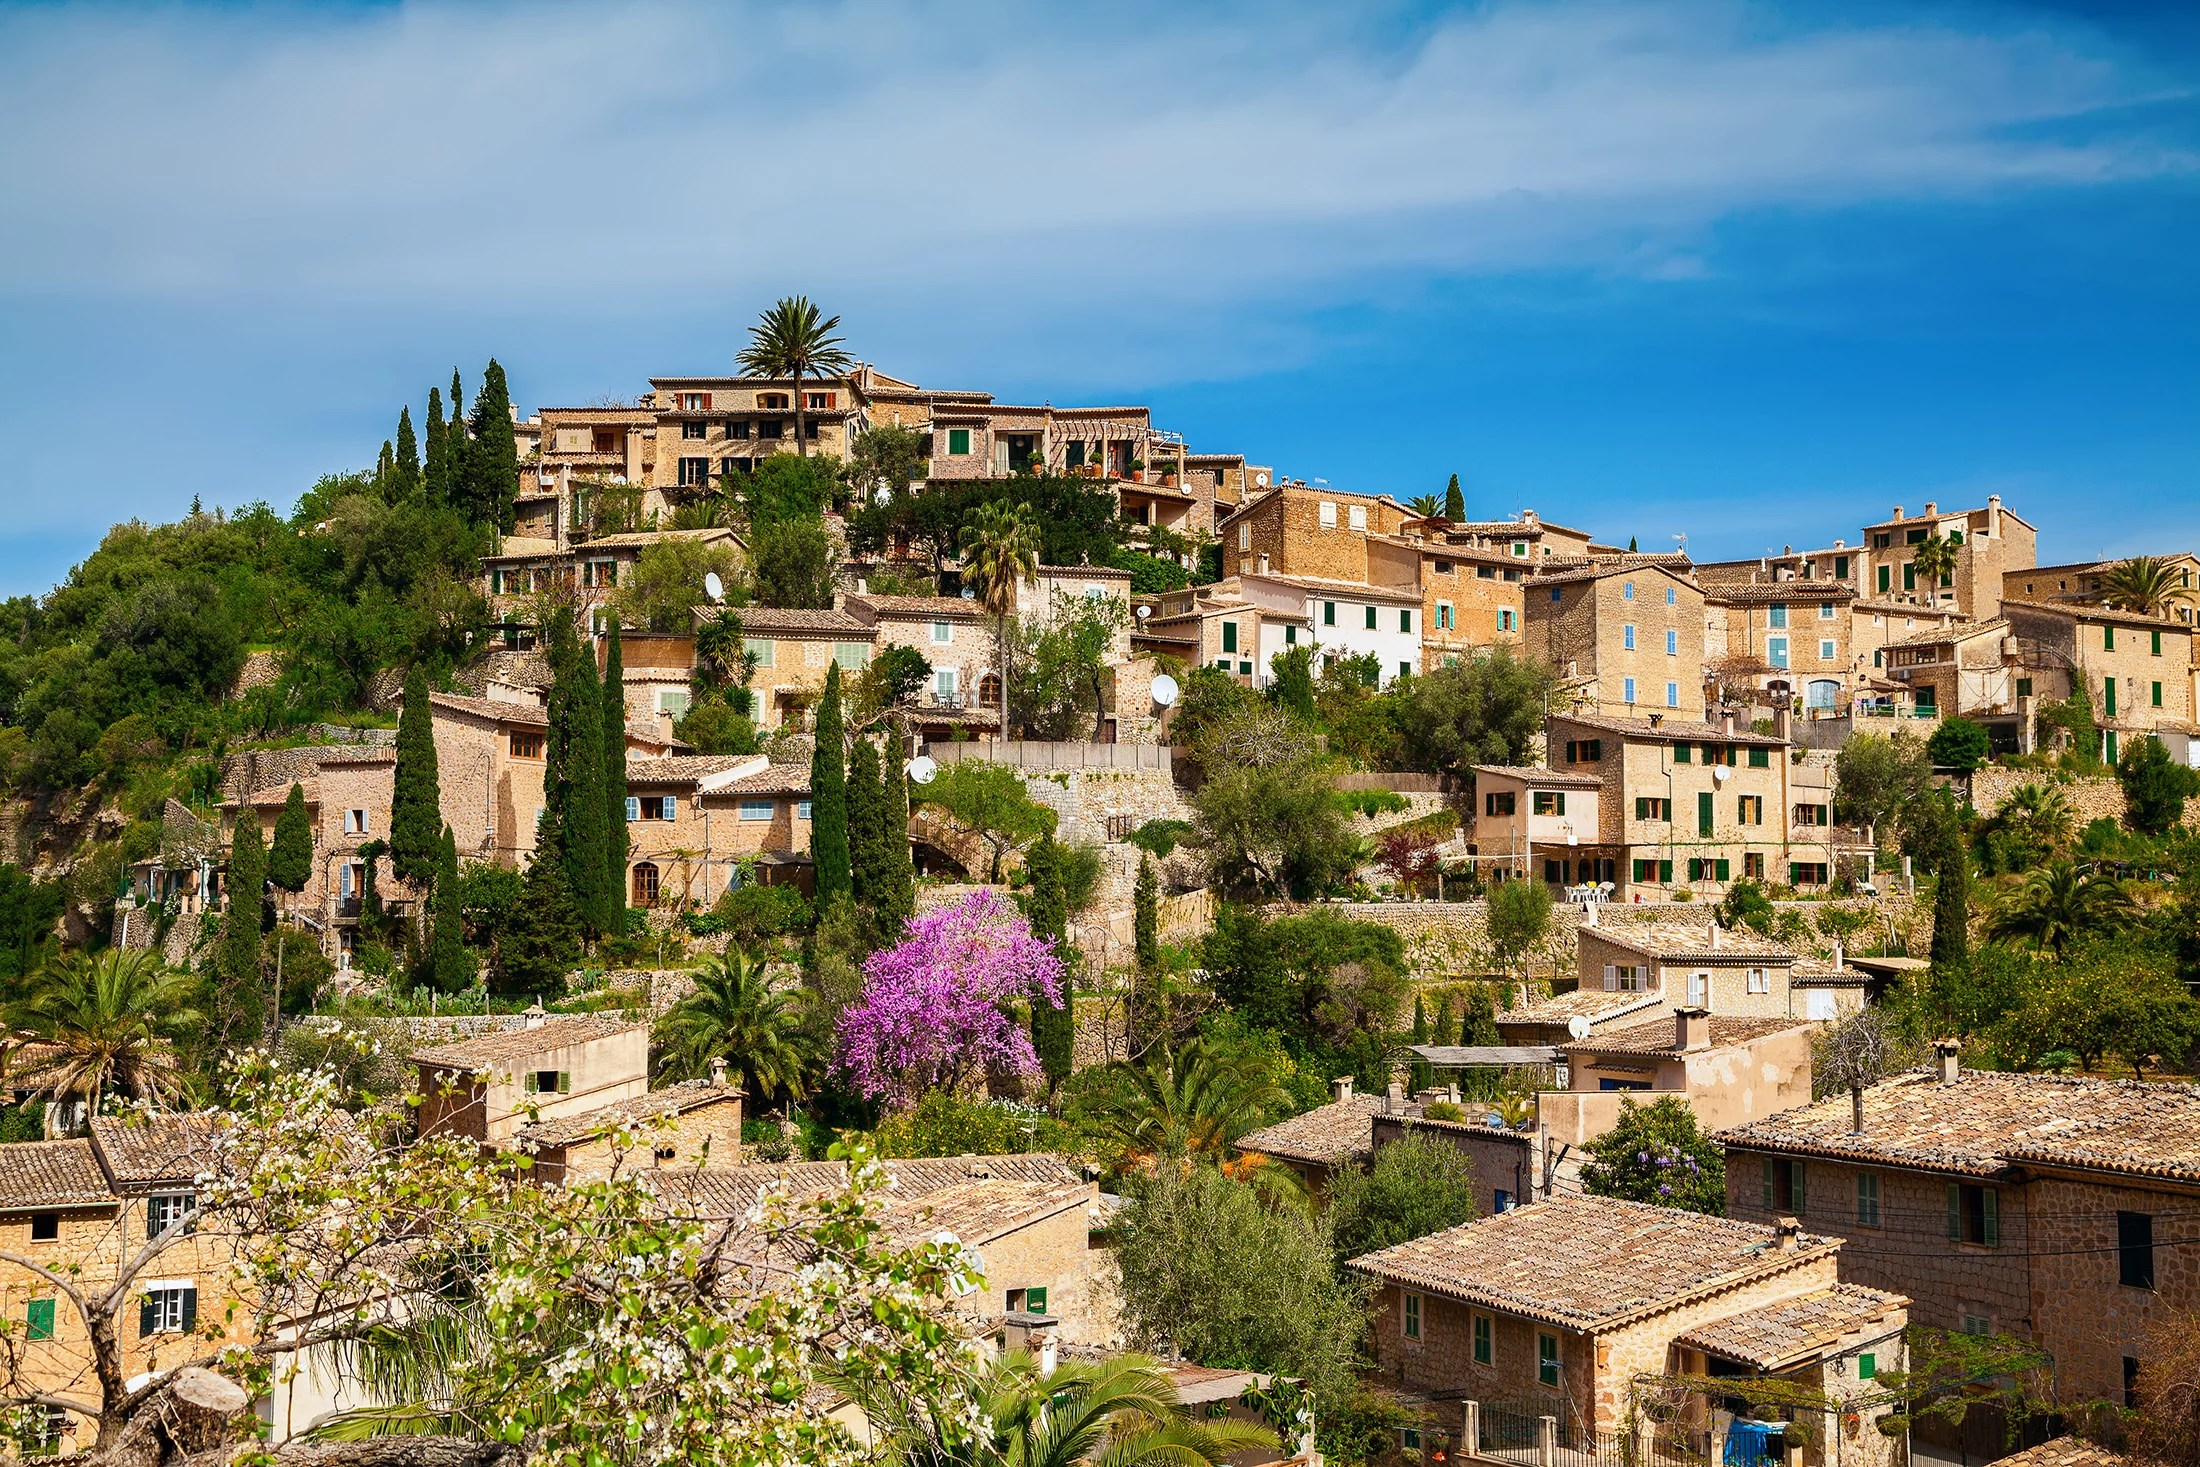 A dreamy village of Deià in the north of Mallorca has many great photo spots